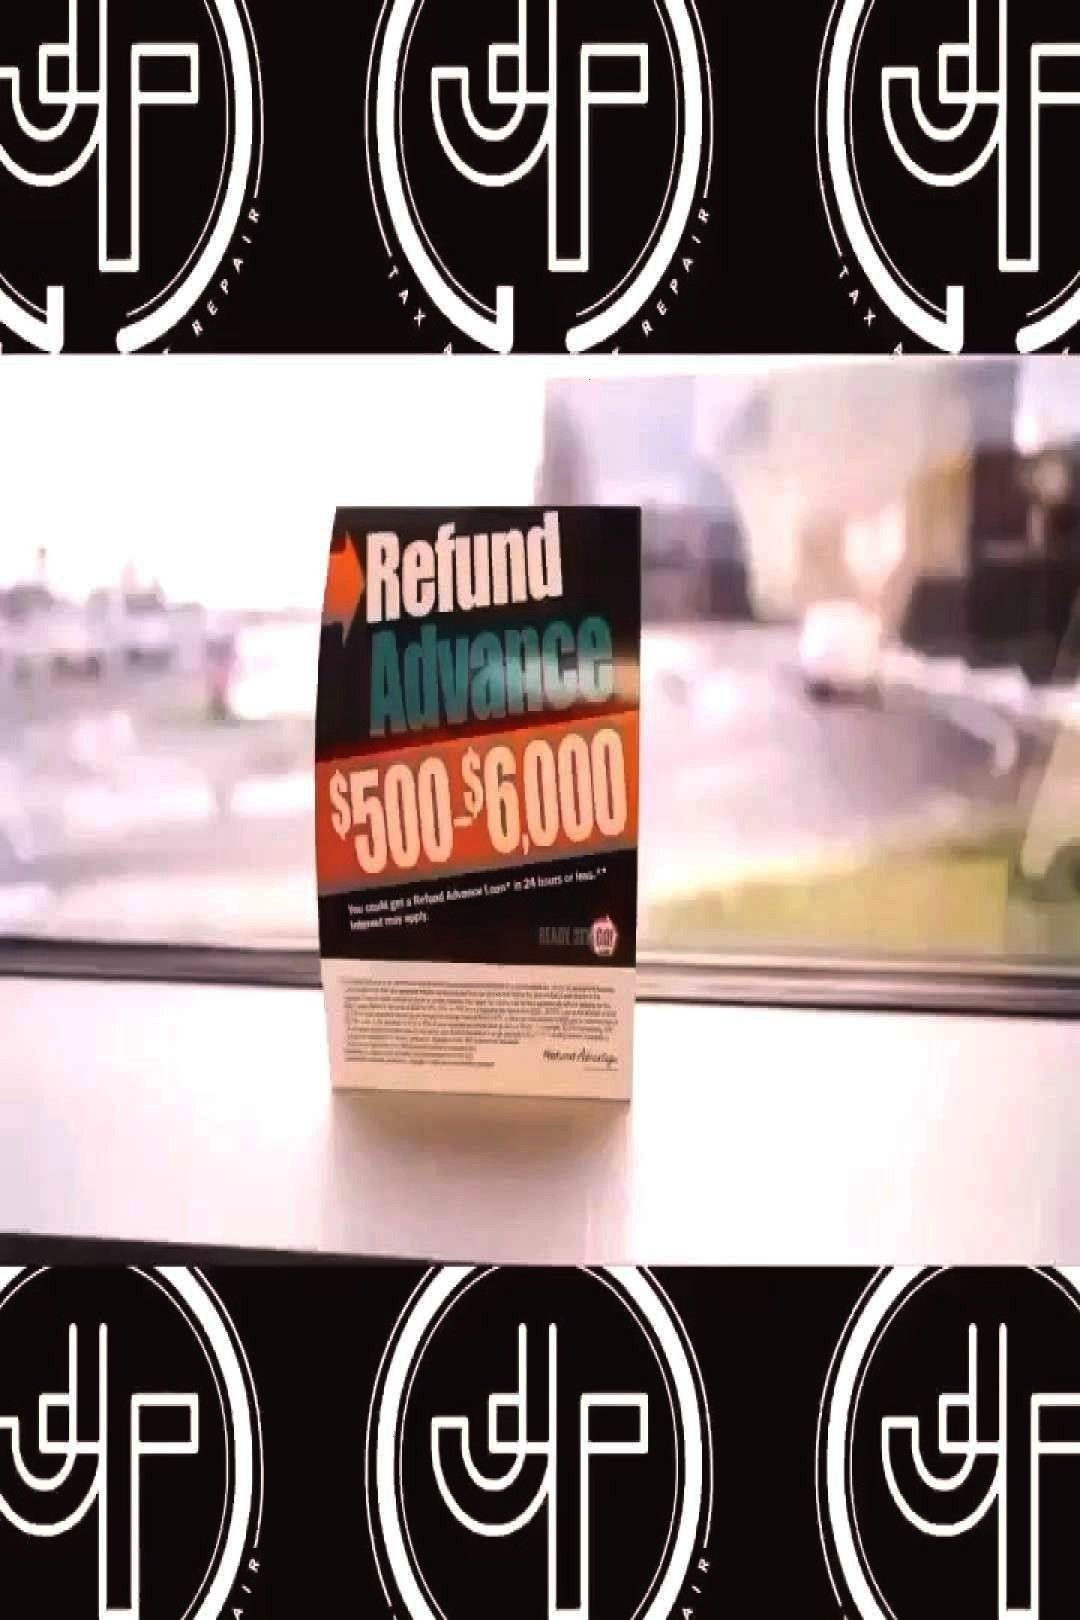 Upfront 6000 Advance refund Loans begin January 12th CYou can find Tax help and more on our websitePay Zero Upfront 6000 Advance refund Loans begin JanuarPay Zero Upfront...